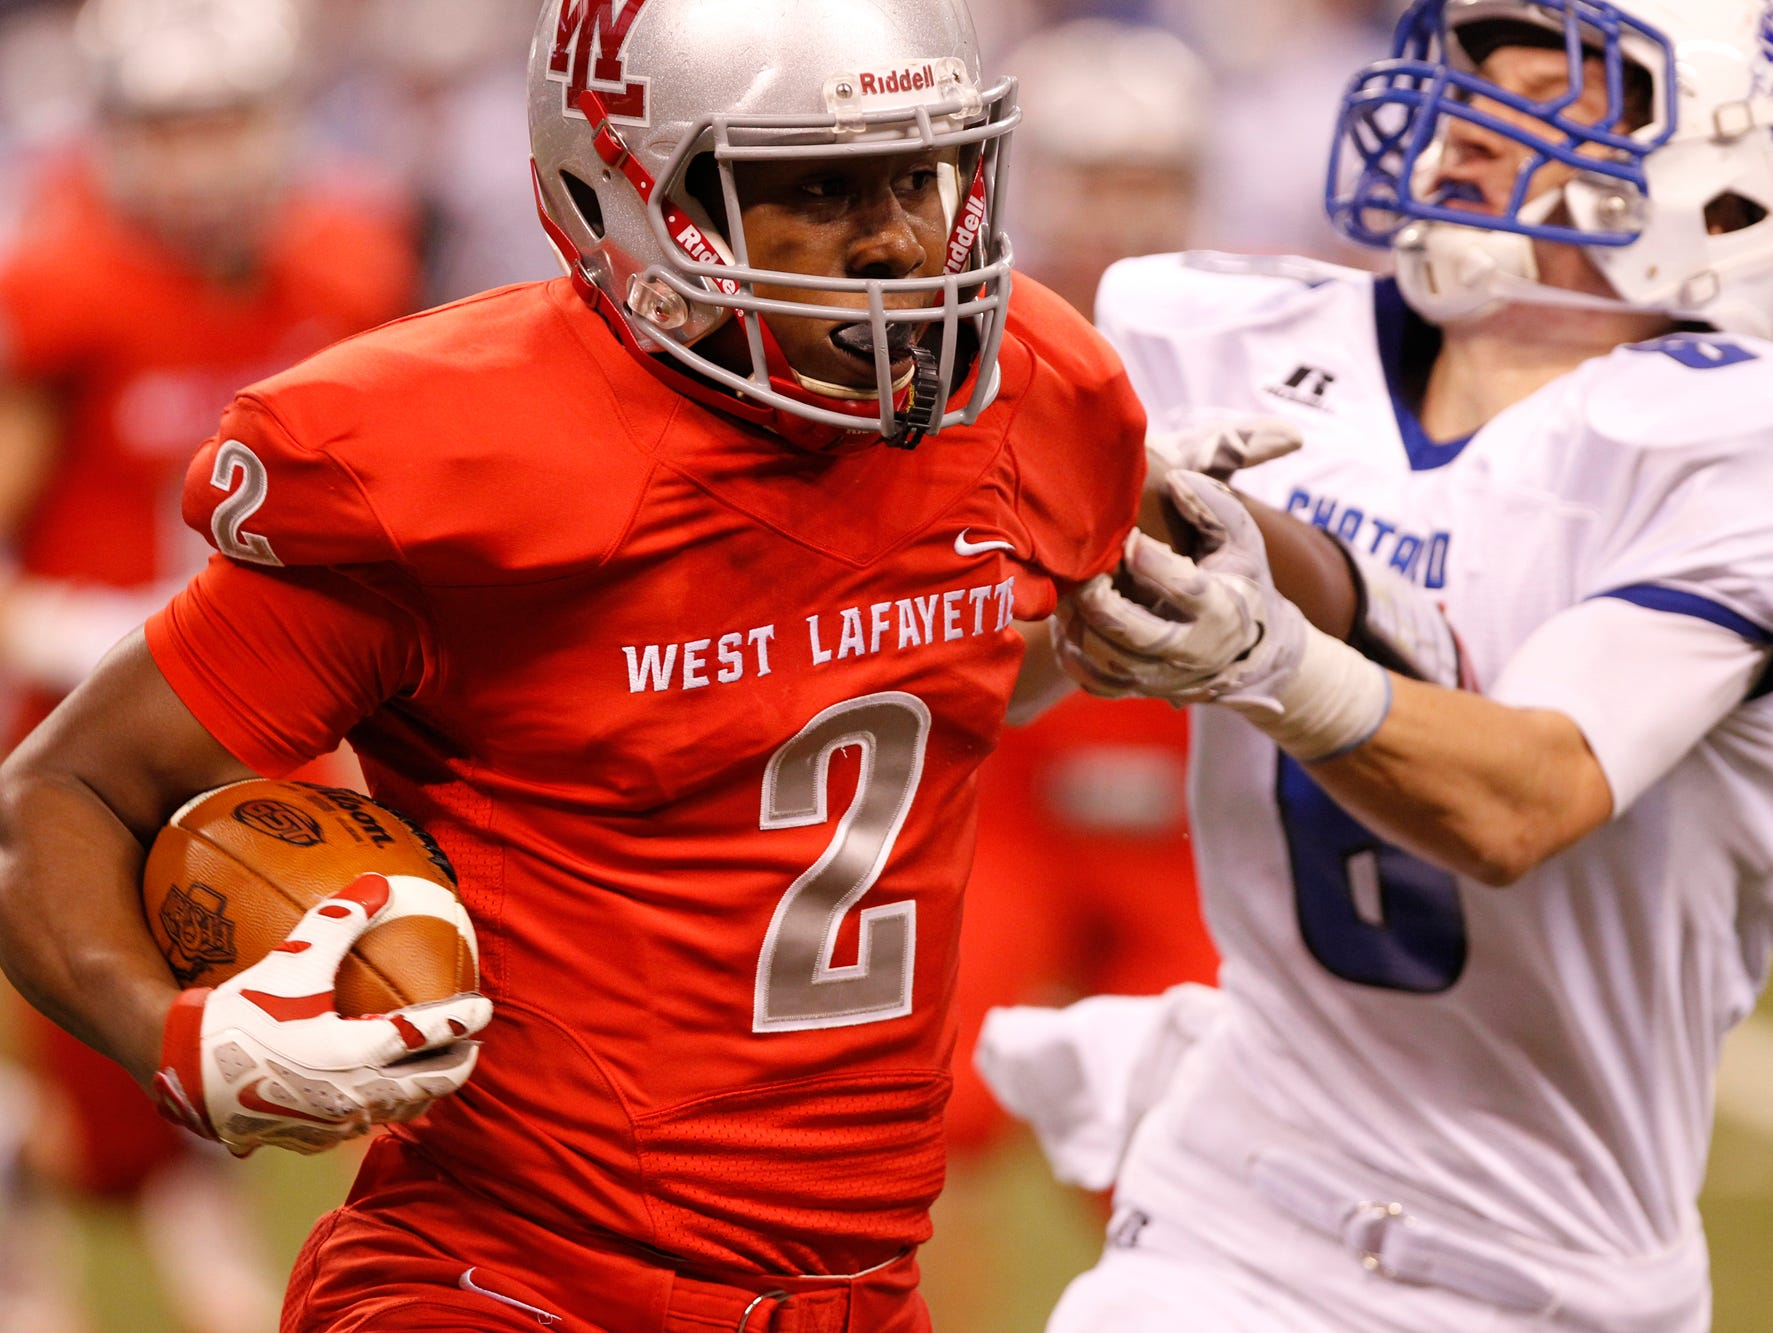 Nai Carlisle with a carry for West Lafayette against Bishop Chatard in the Class 3A state finals Friday, November 27, 2015, at Lucas Oil Stadium in Indianapolis. West Lafayette fell to Bishop Chatard 31-7.